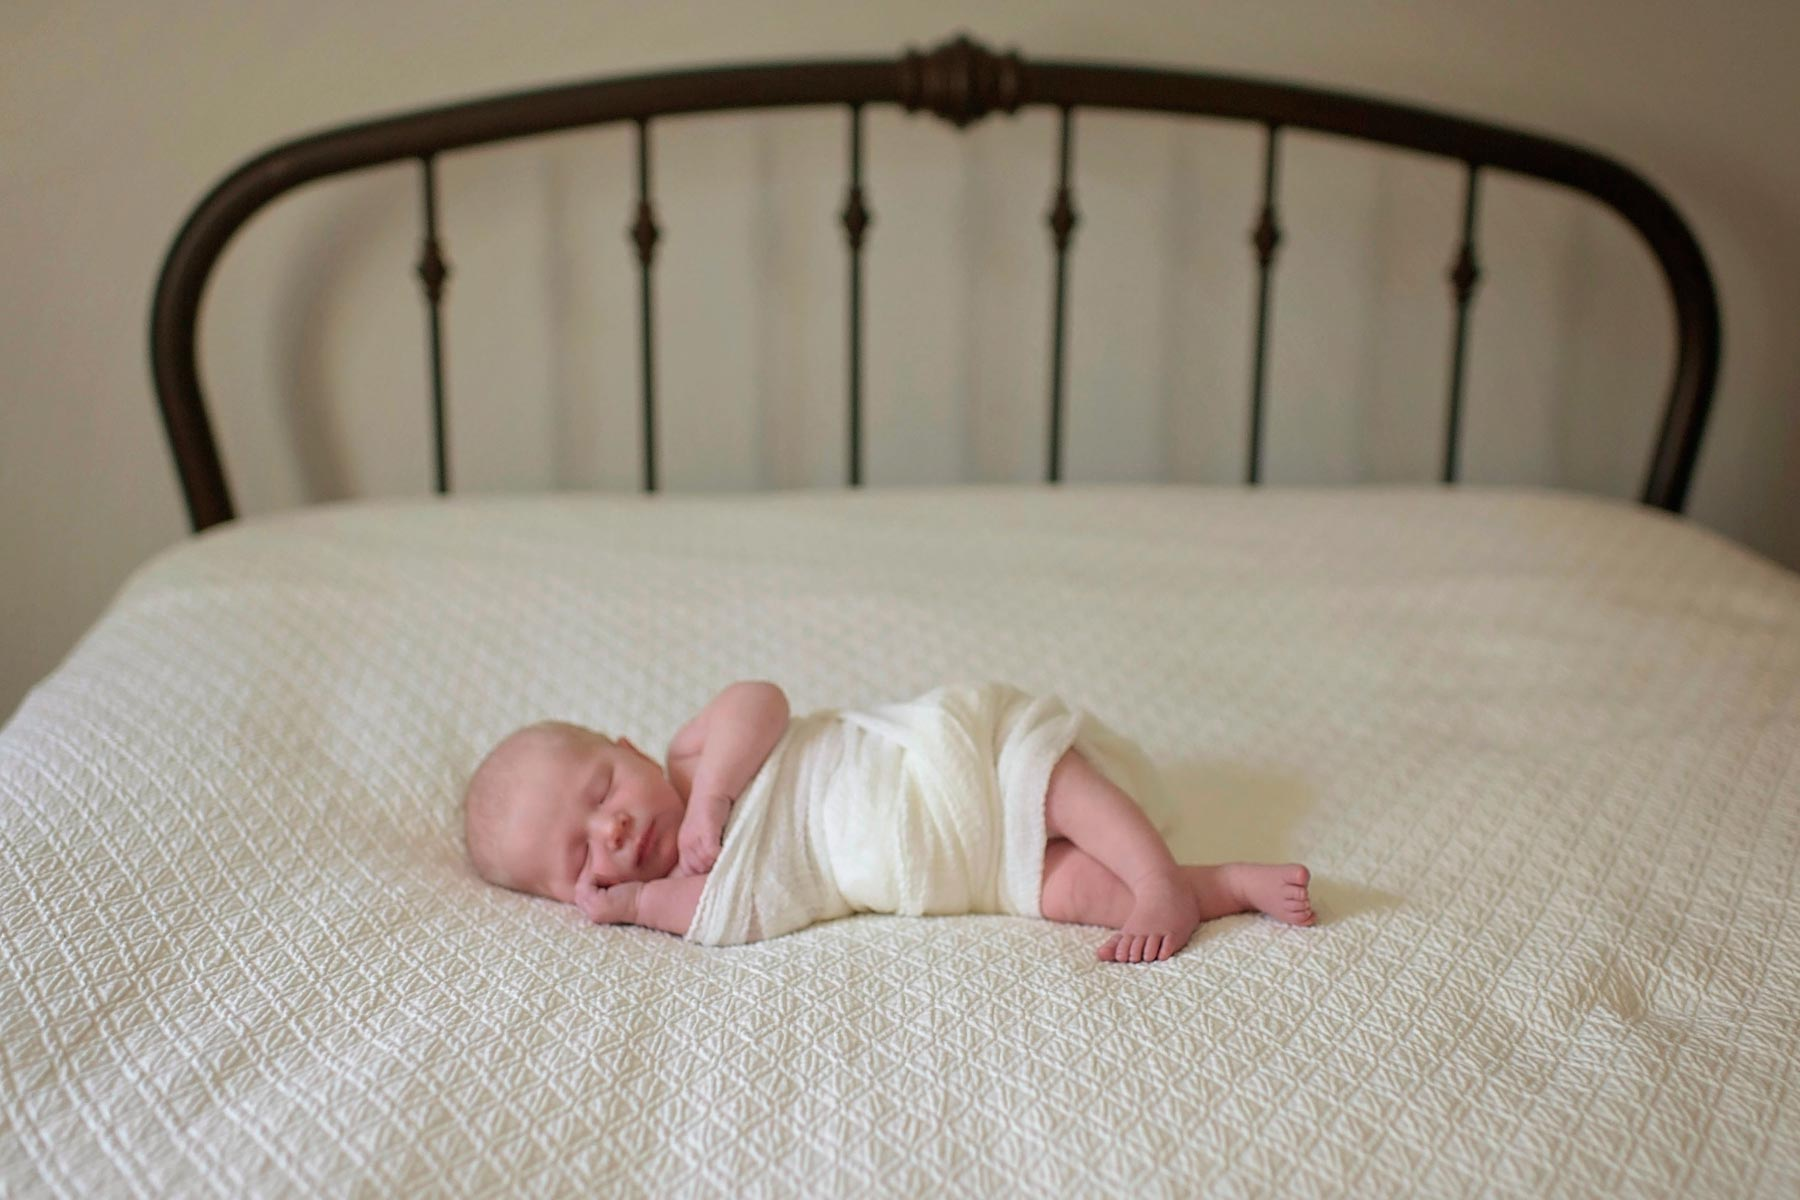 newborn baby swaddled on a bed